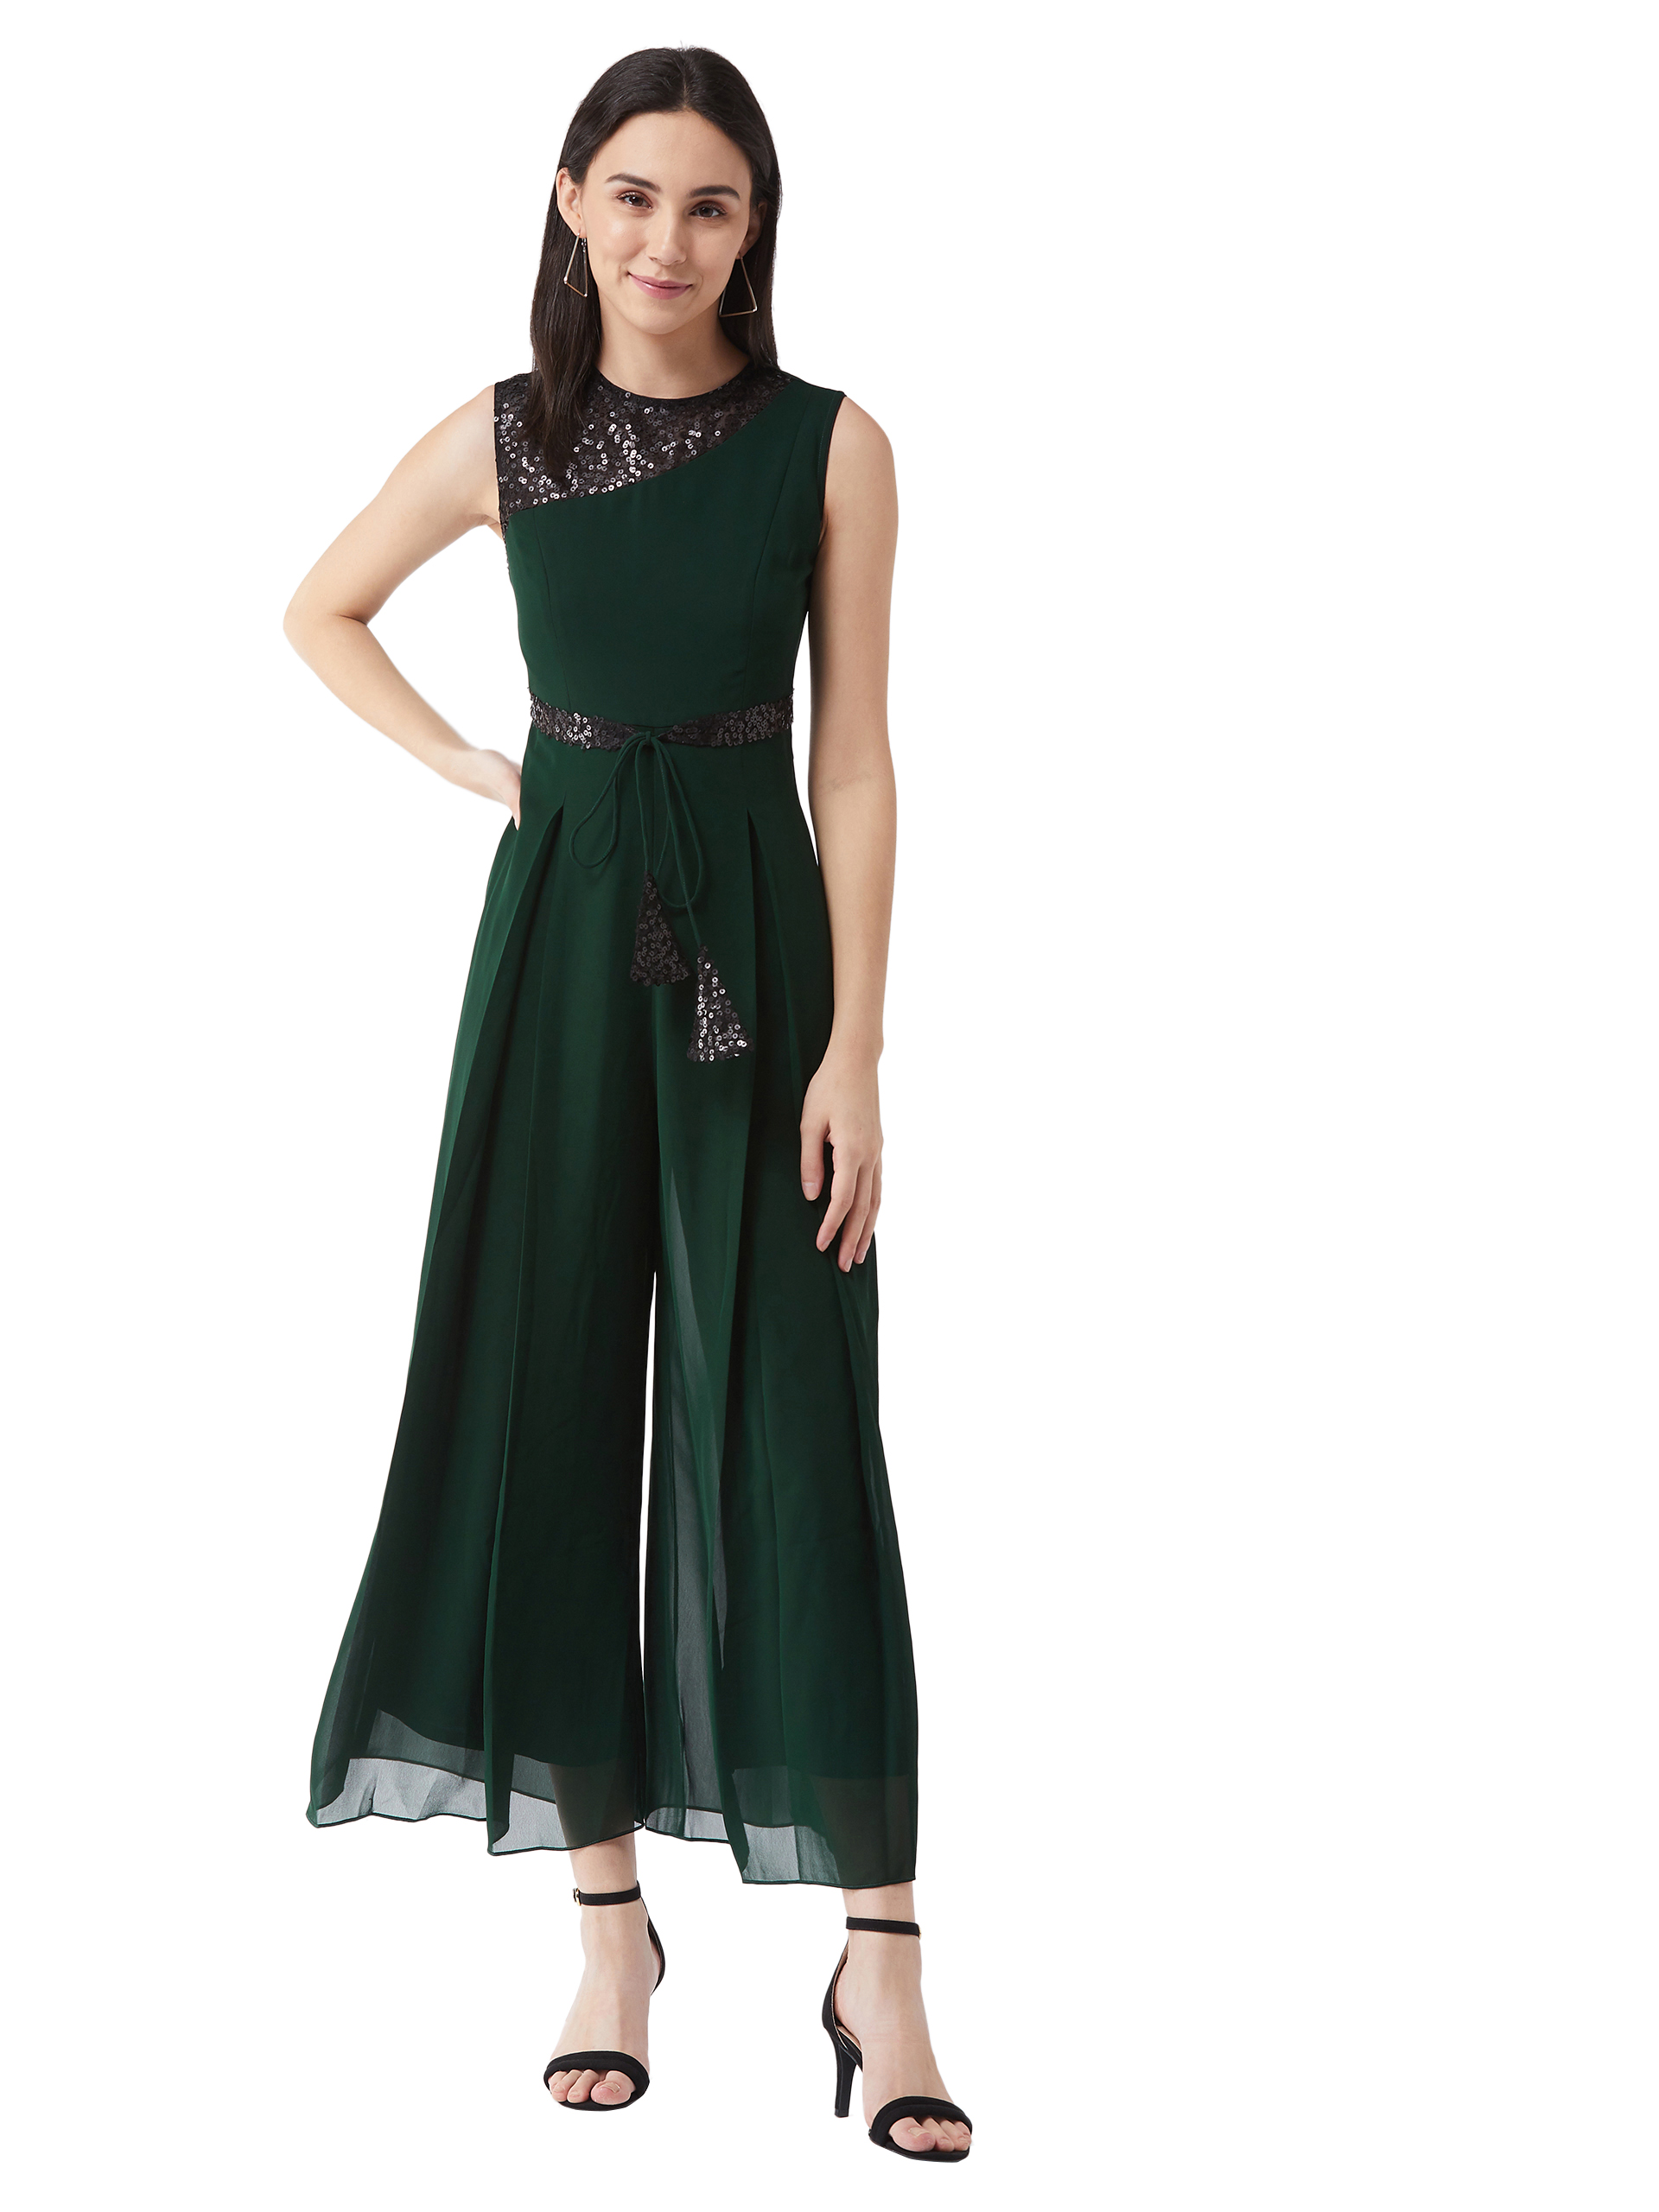 MISS CHASE |  Green Solid Relaxed Fit Sleeveless Round Neck Ankle-Length Straight Jumpsuit